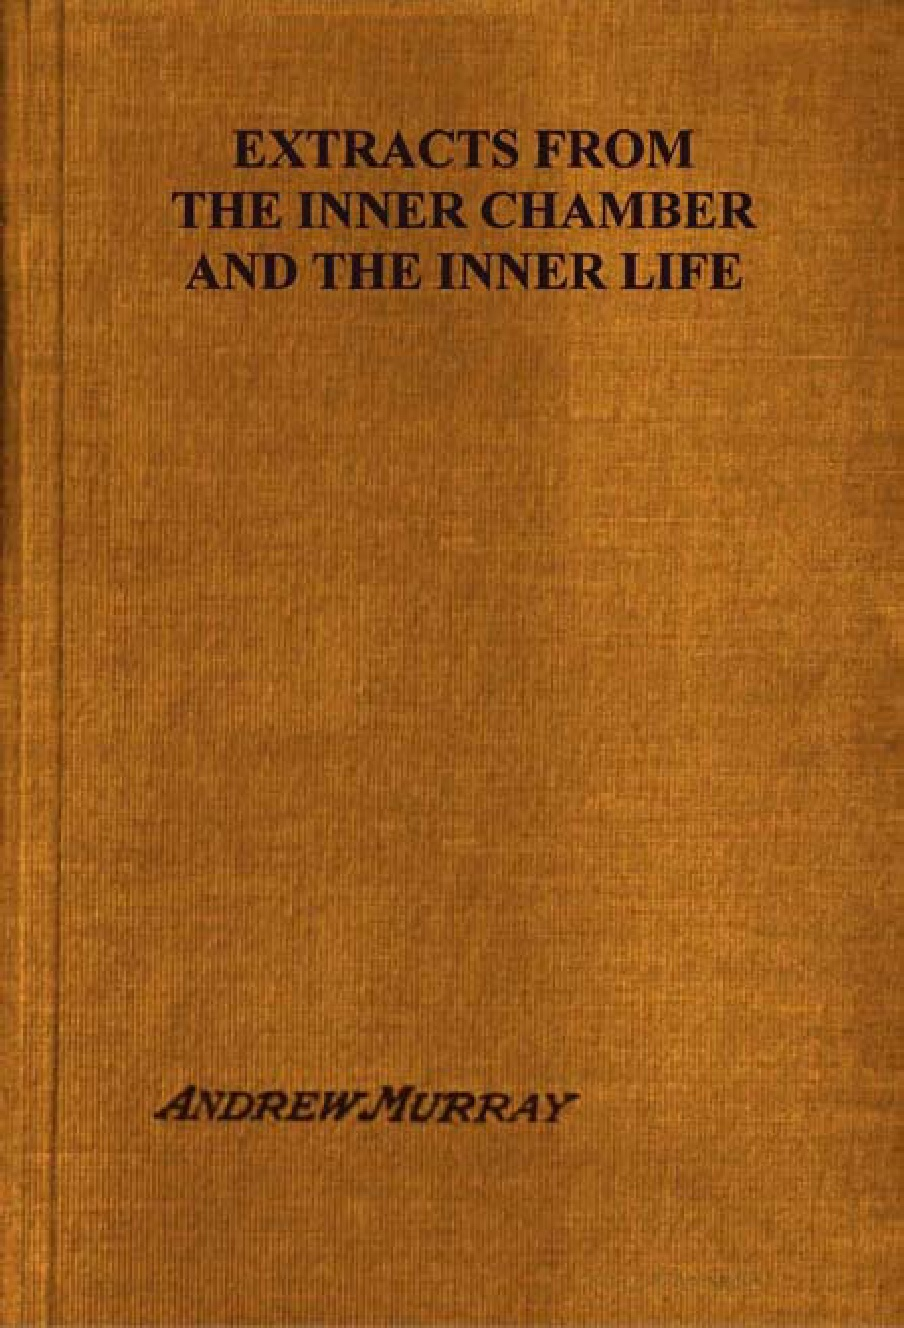 Andrew Murray-Extracts From The Inner Chamber And The Inner Life-